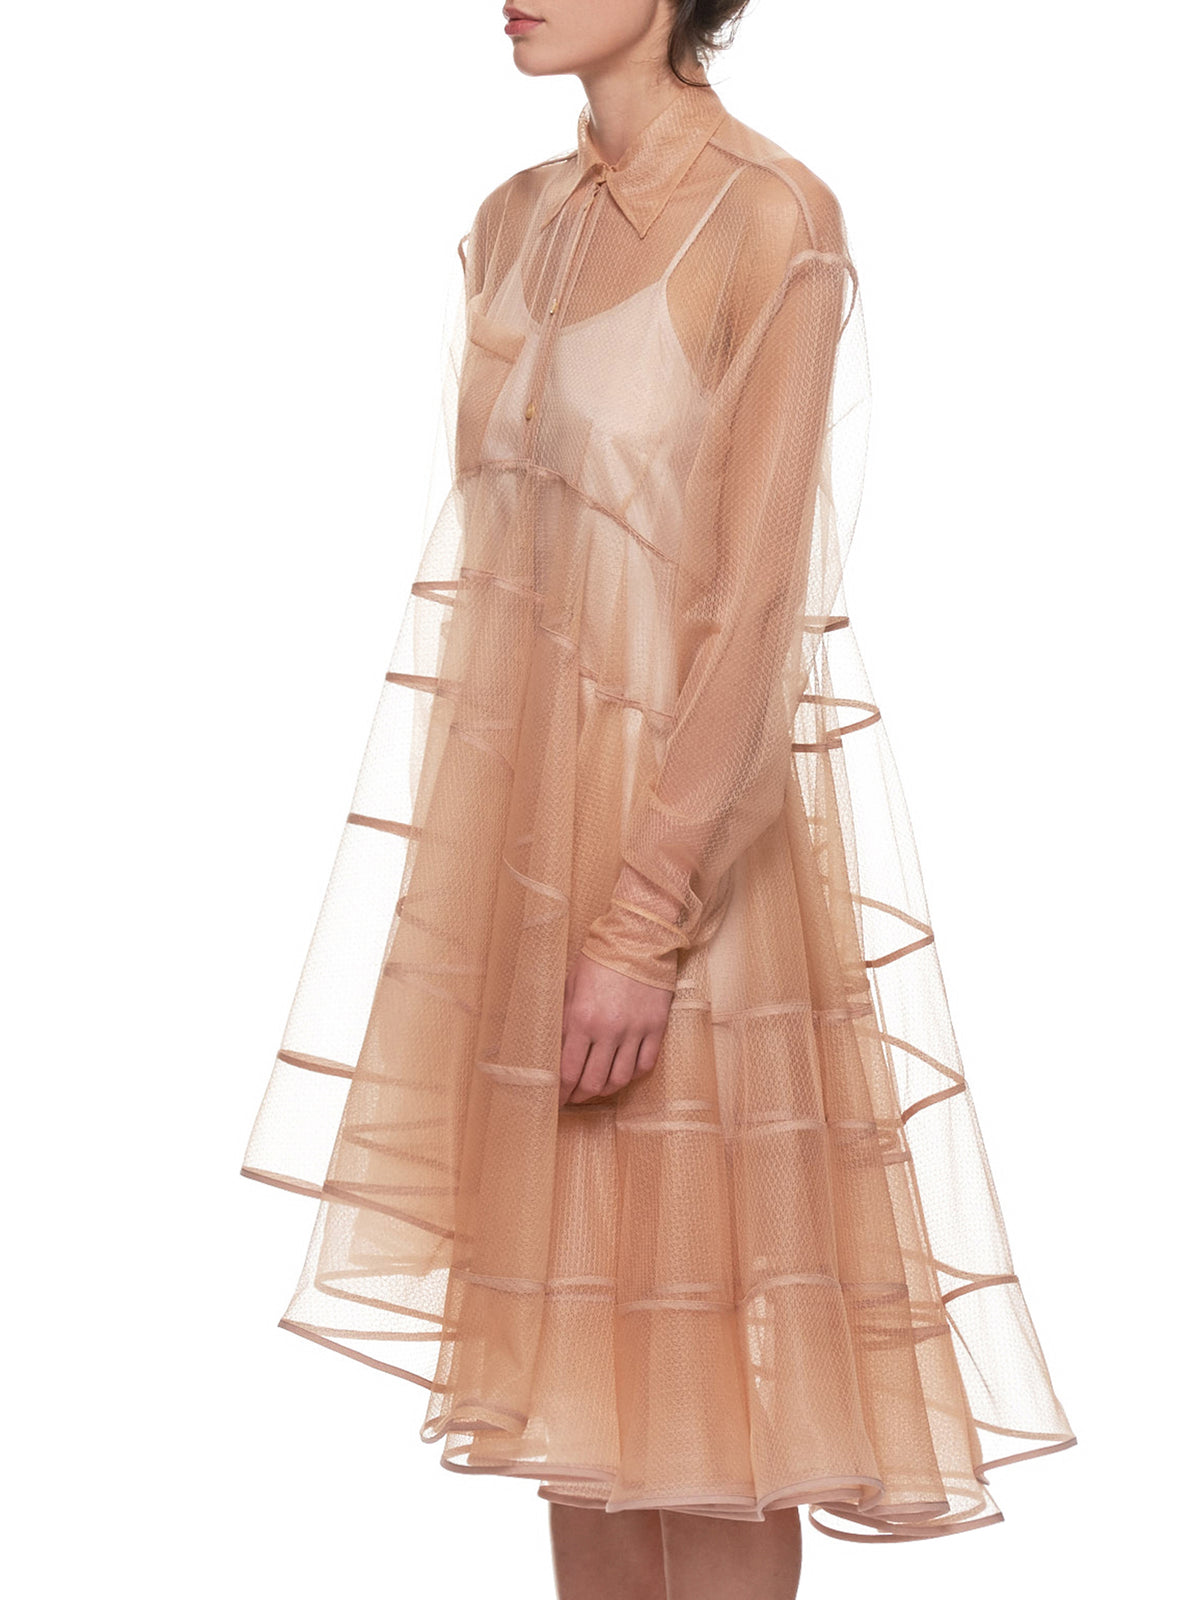 'Daelyn Dress' (WD06-NUDE)